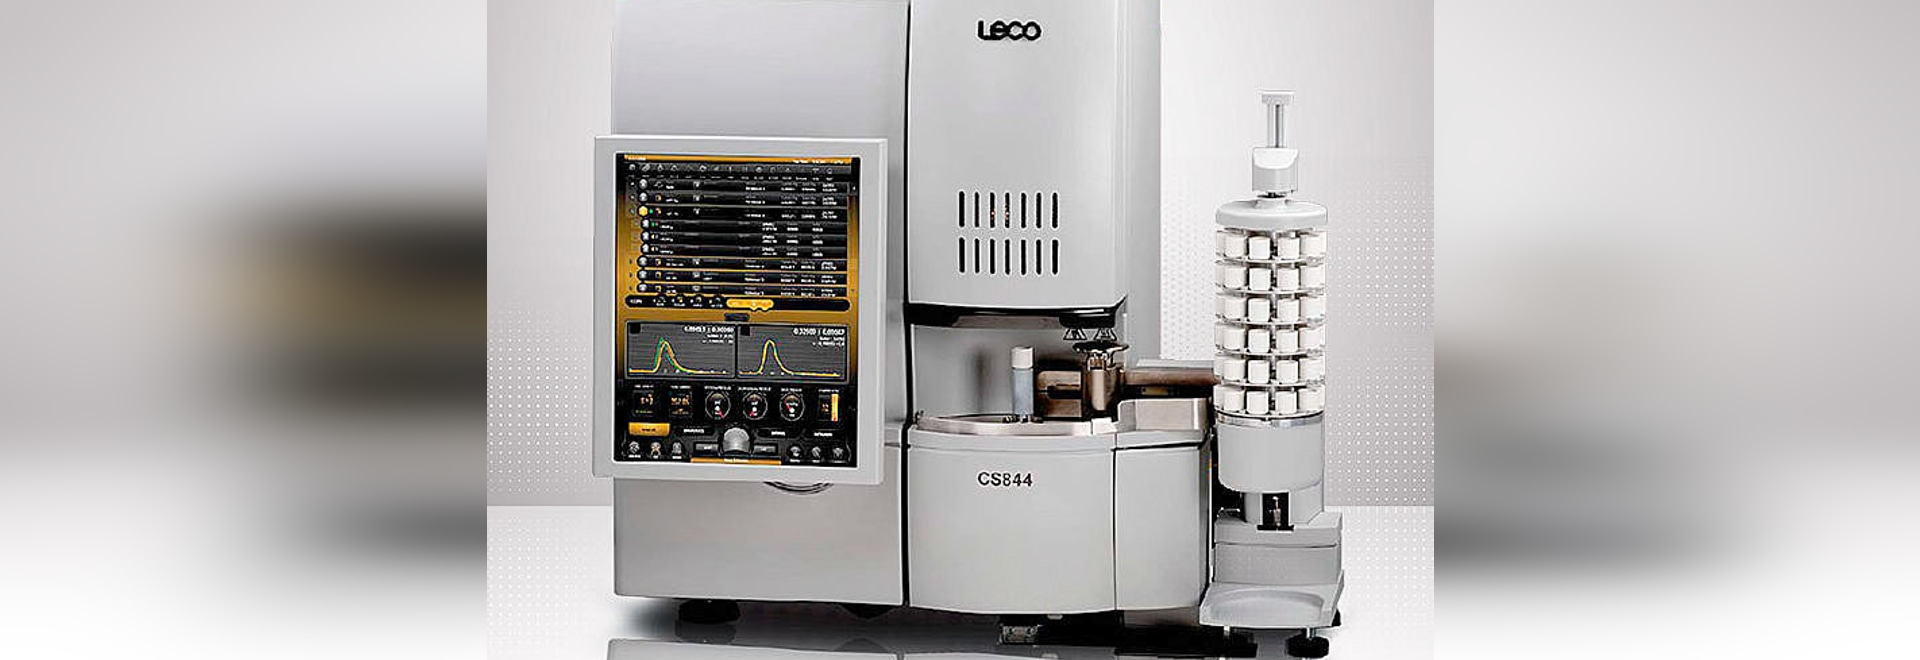 Unattended Carbon/Sulfur analysis saves time